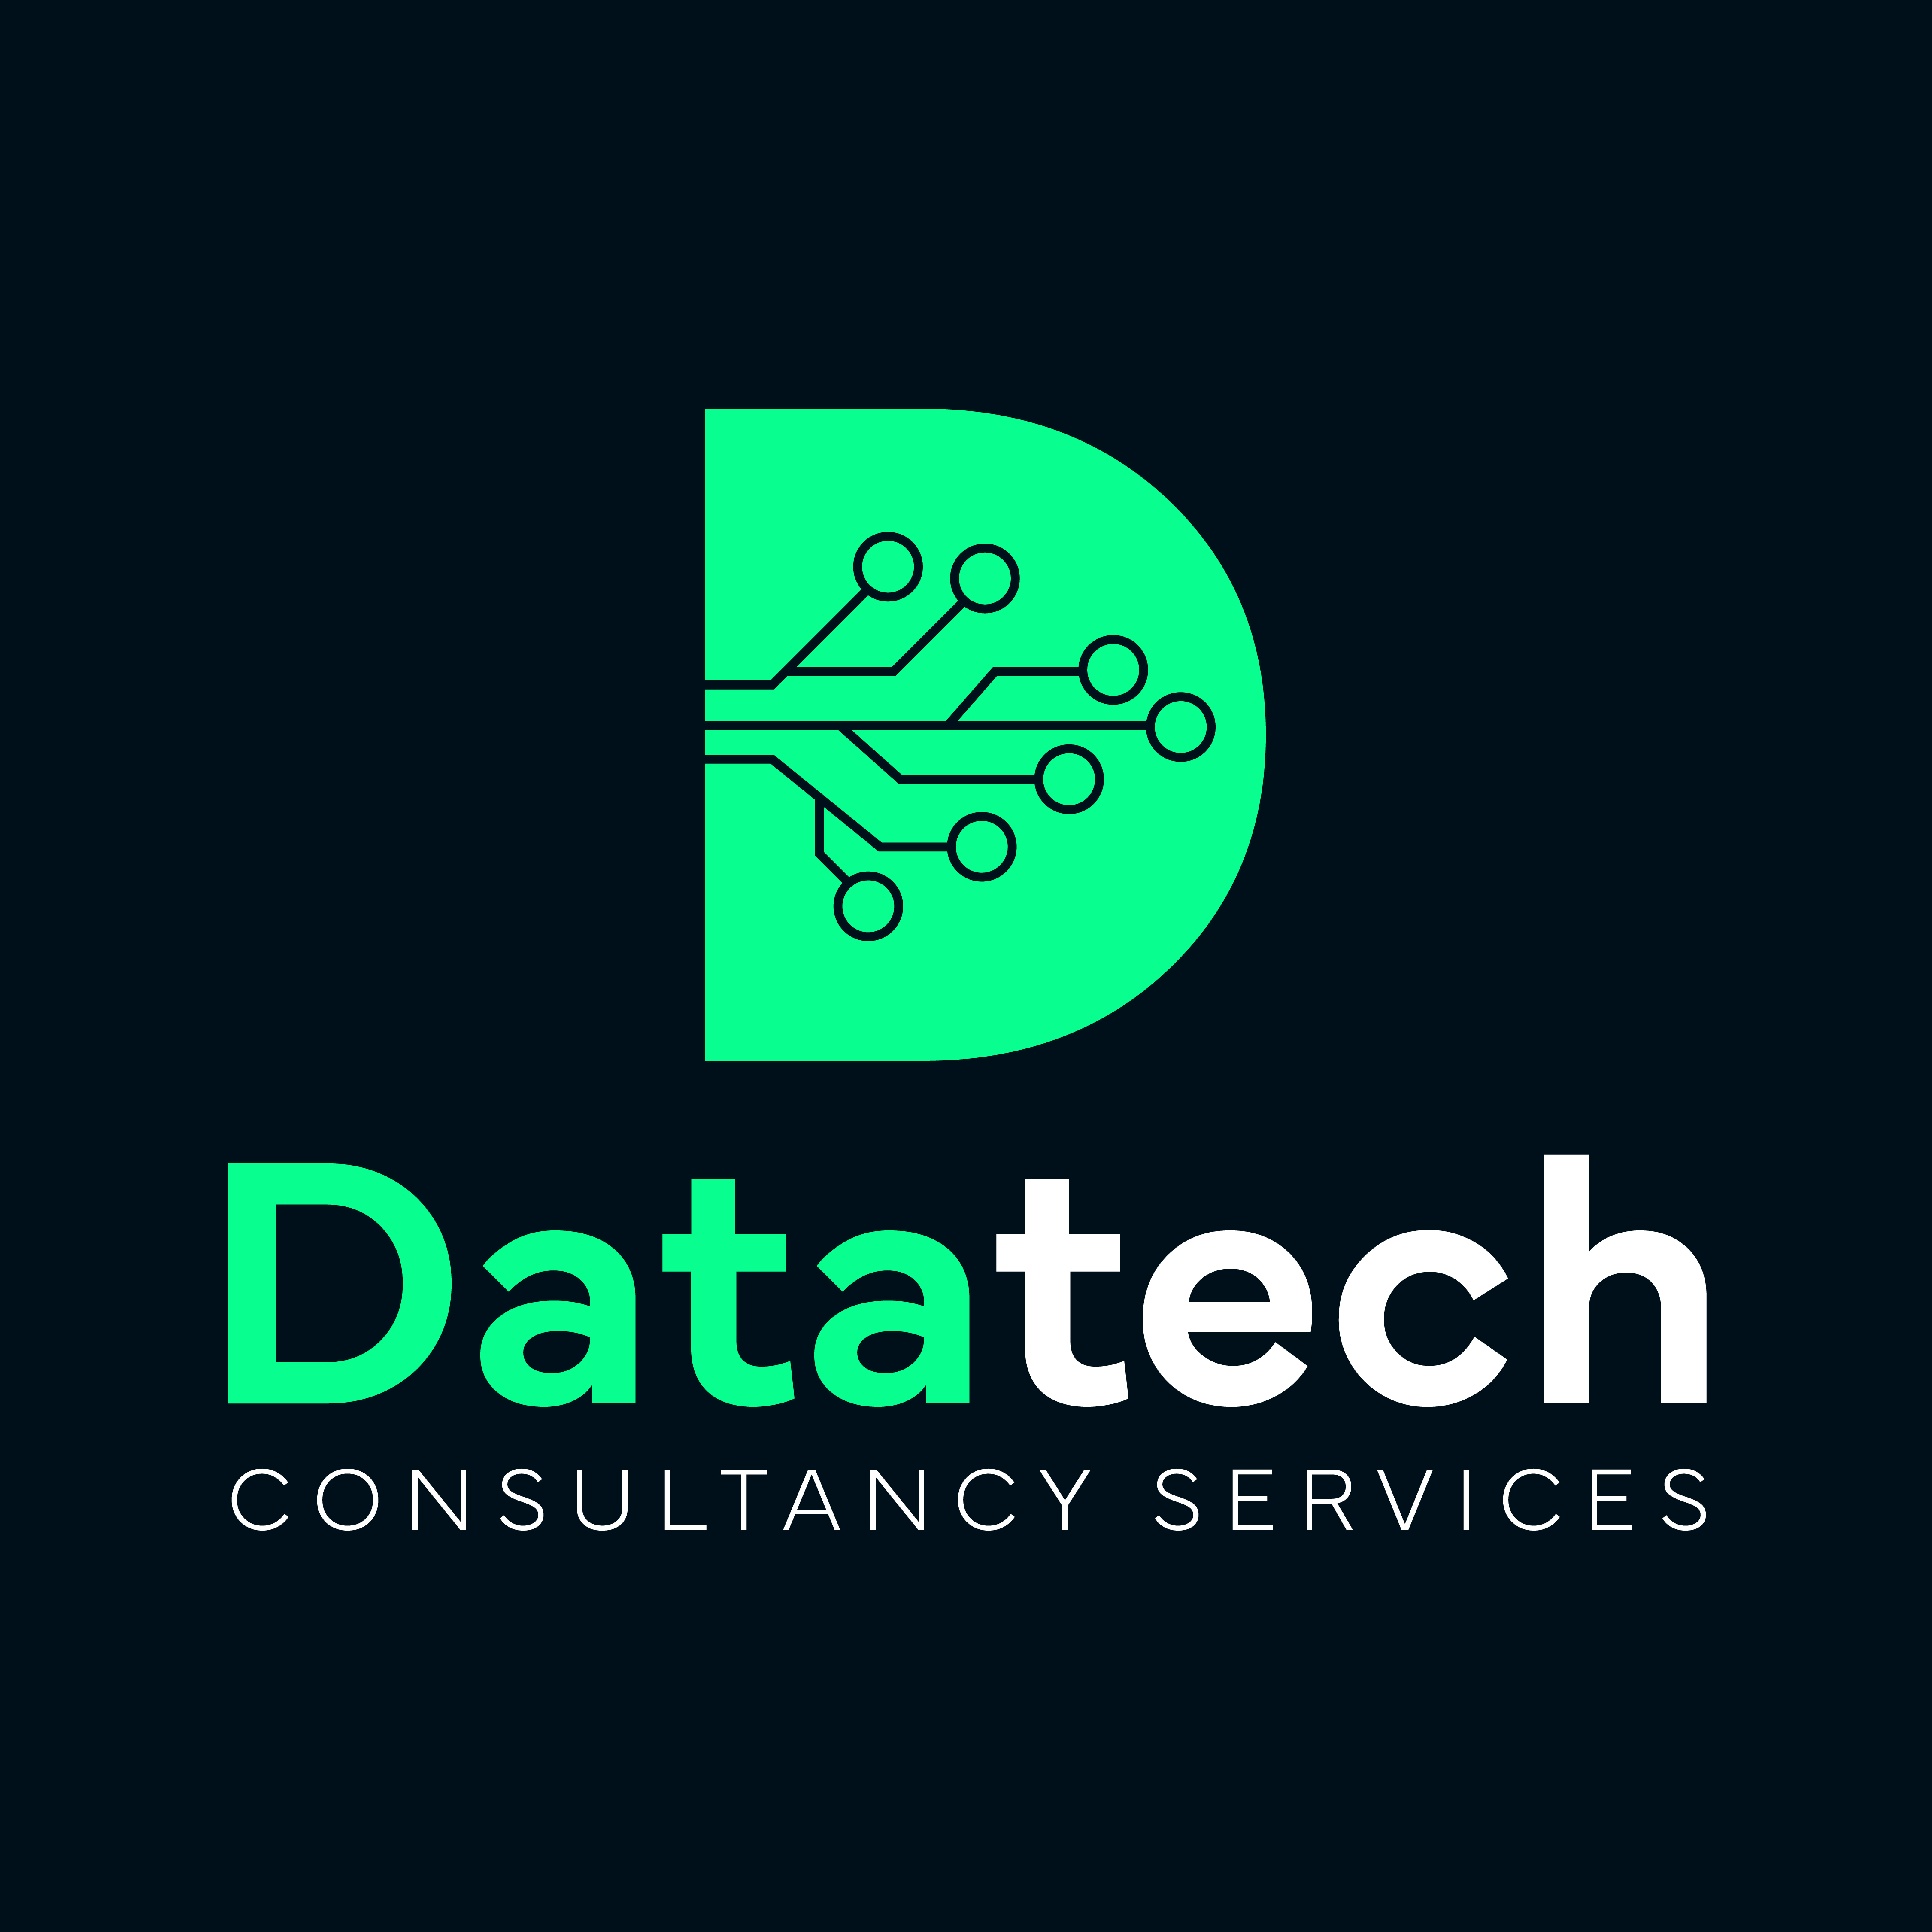 Datatech Consultancy Services